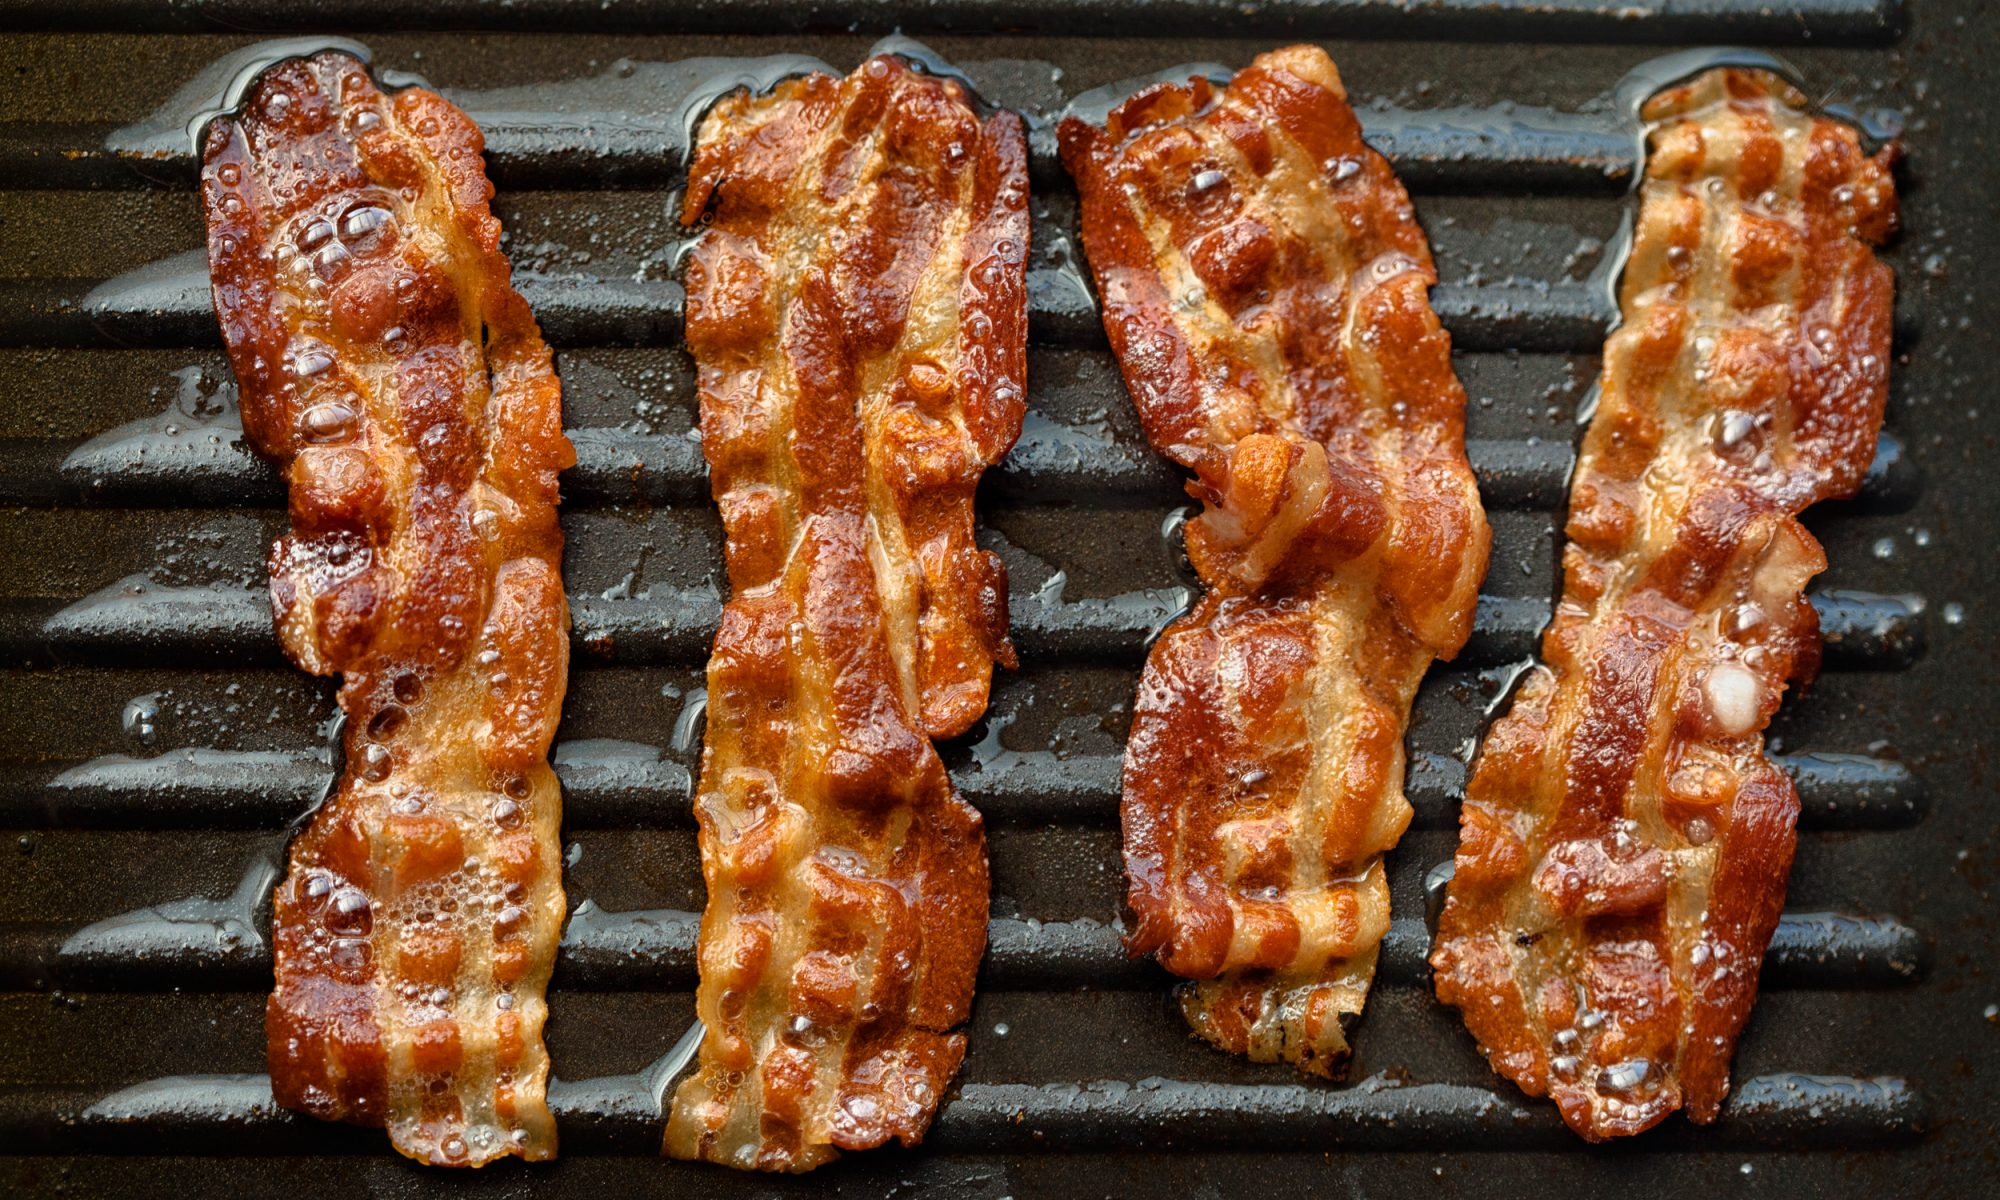 EC: How to Bacon Responsibly